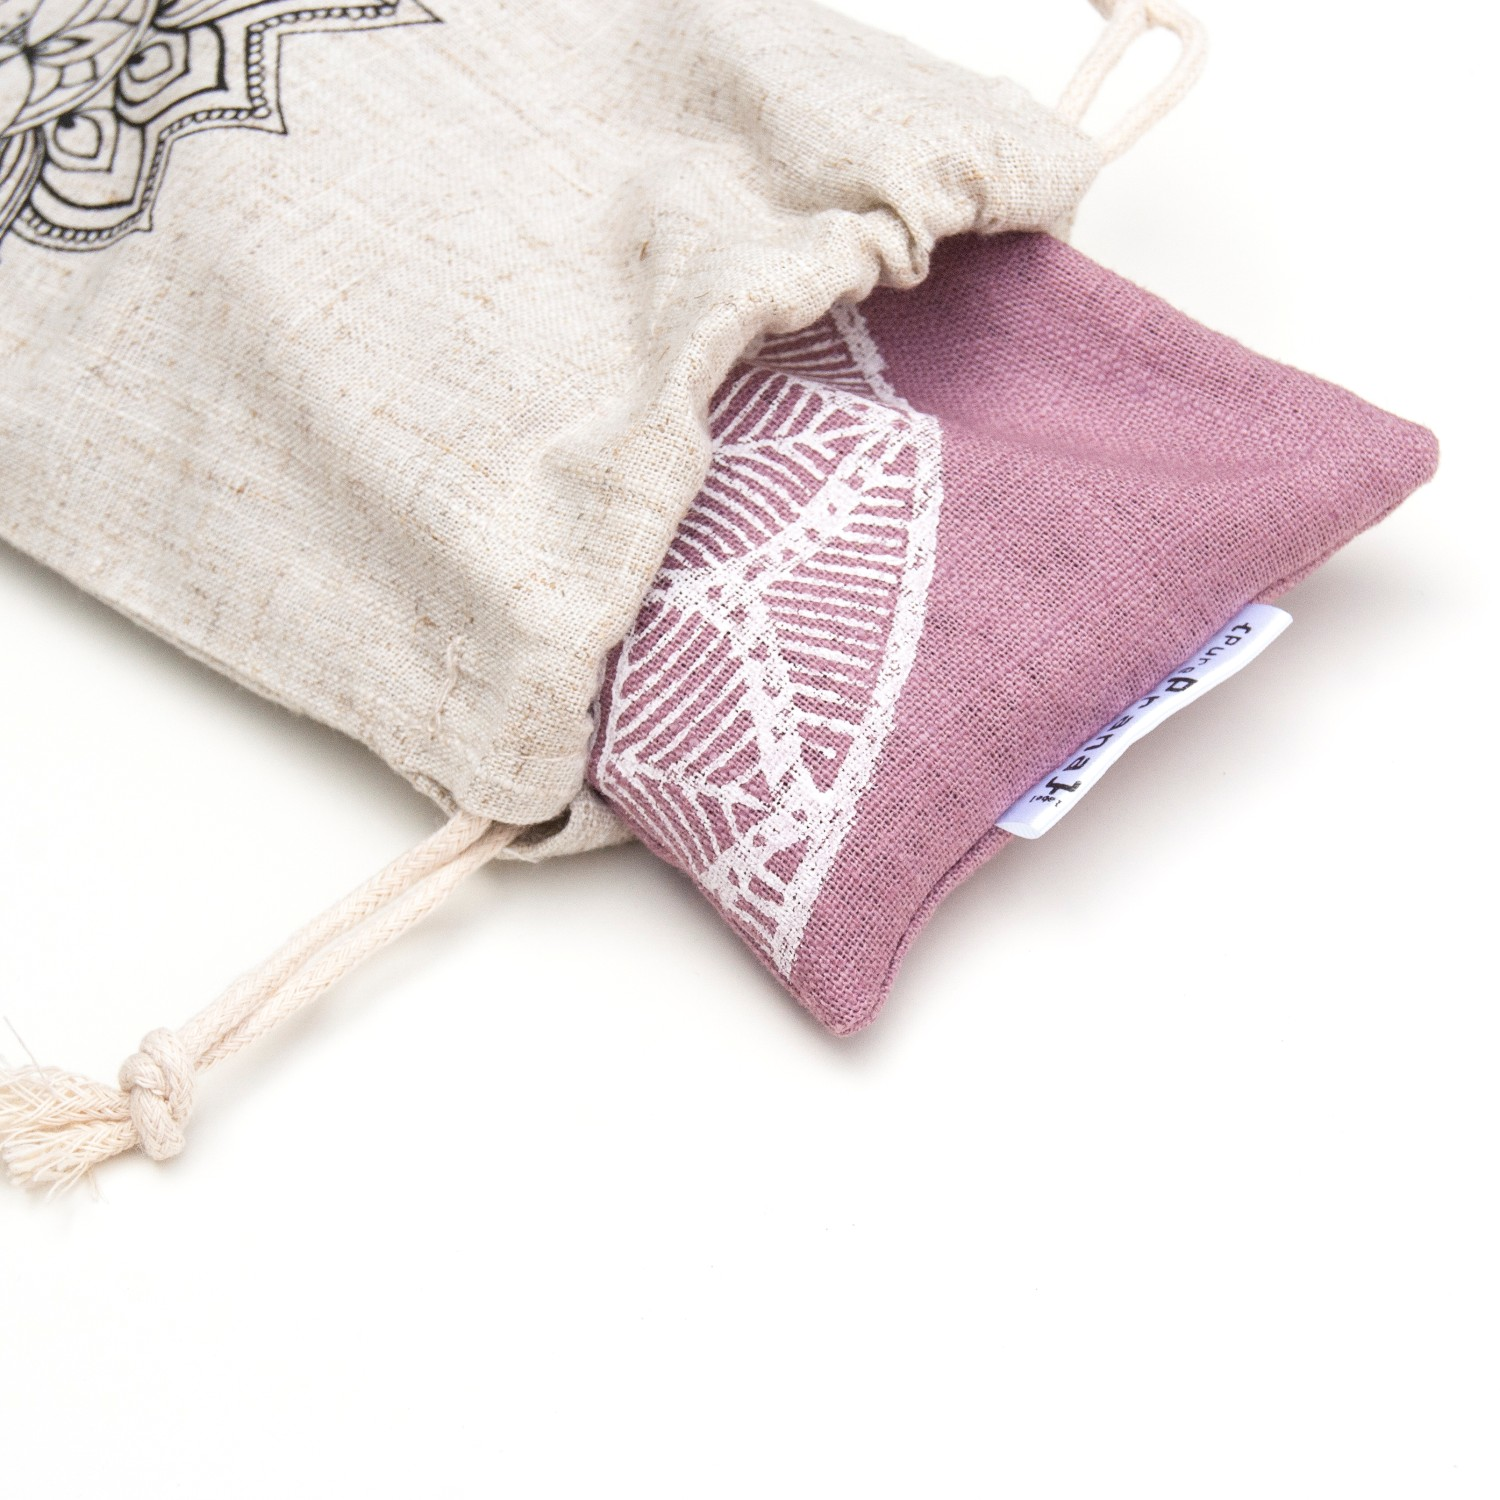 Your eye pillow comes with a linen pouch to keep it clean.